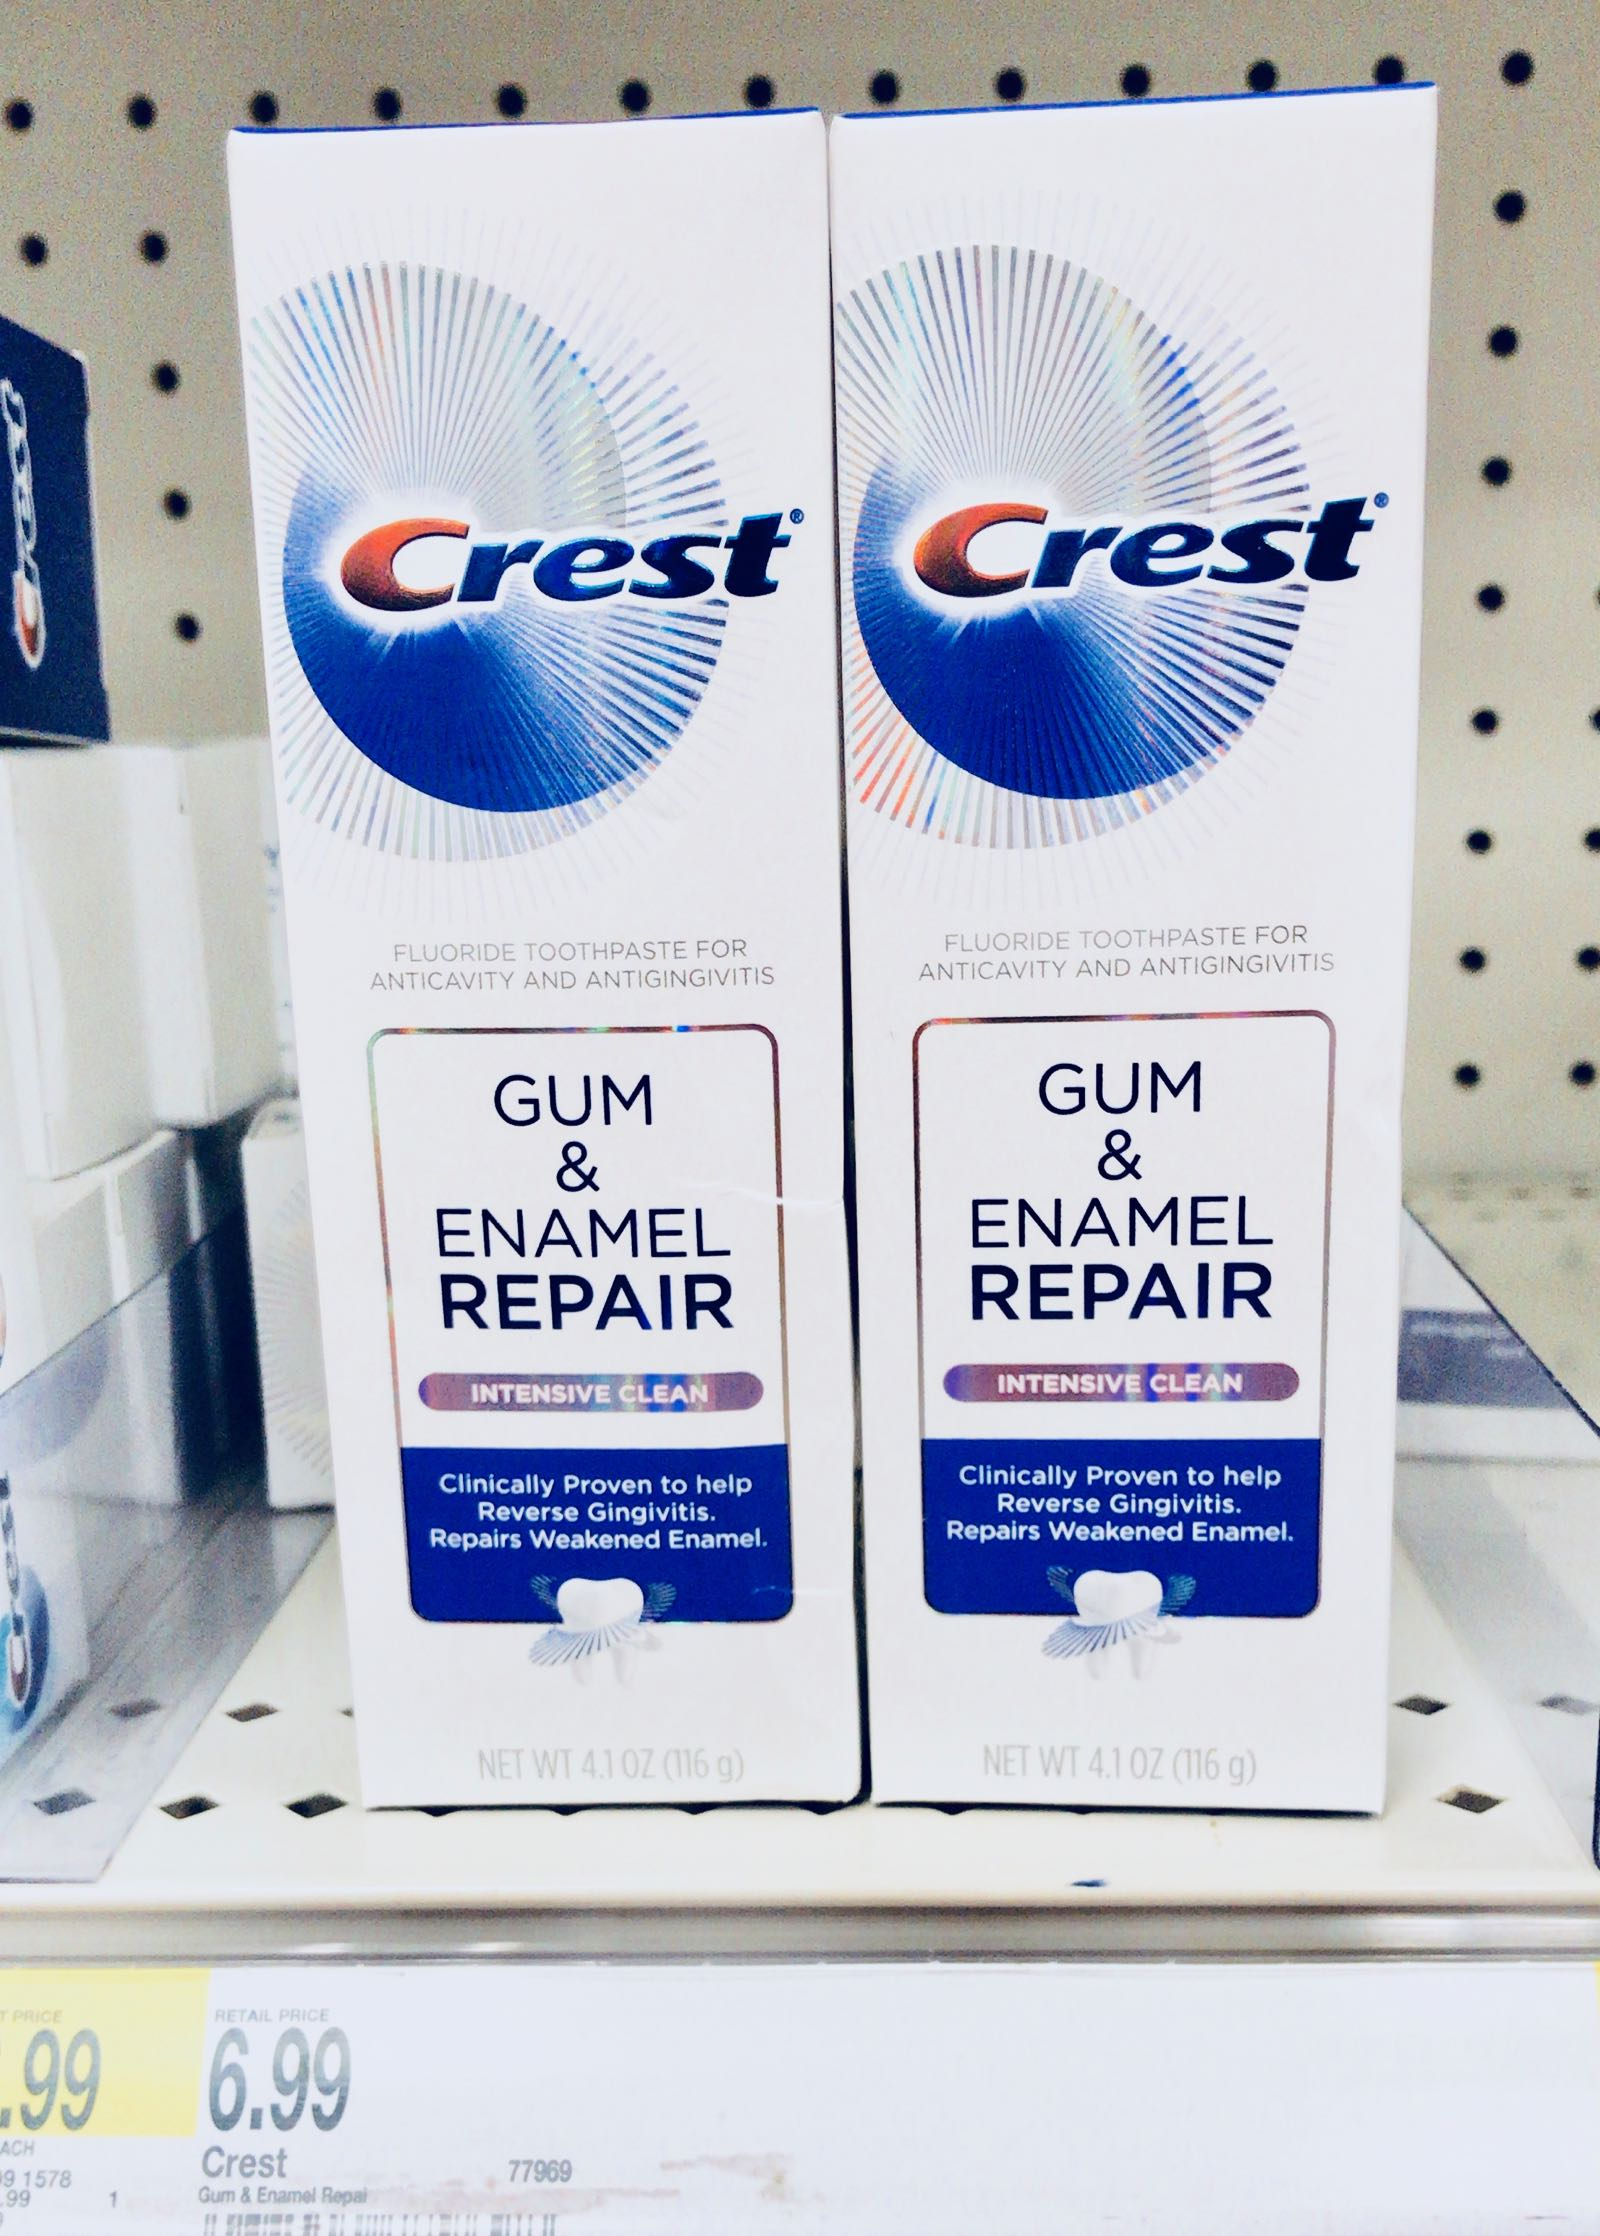 Save $2 on new Crest Gum and Enamel Repair at Target - click here to get the deal!